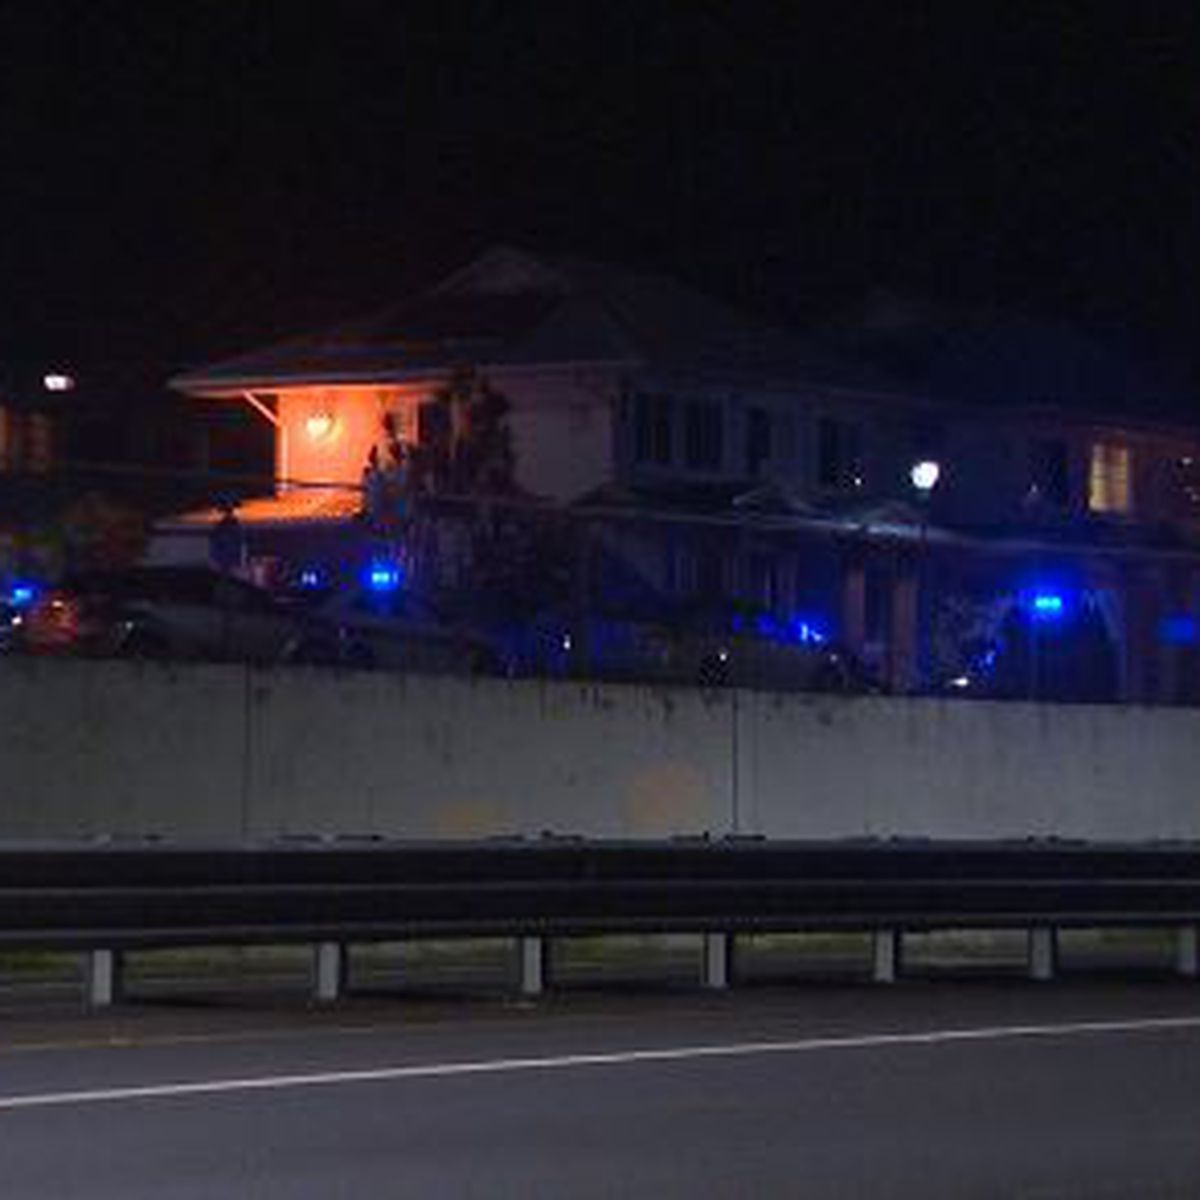 Man killed in early morning shooting at Kalihi Valley Housing complex